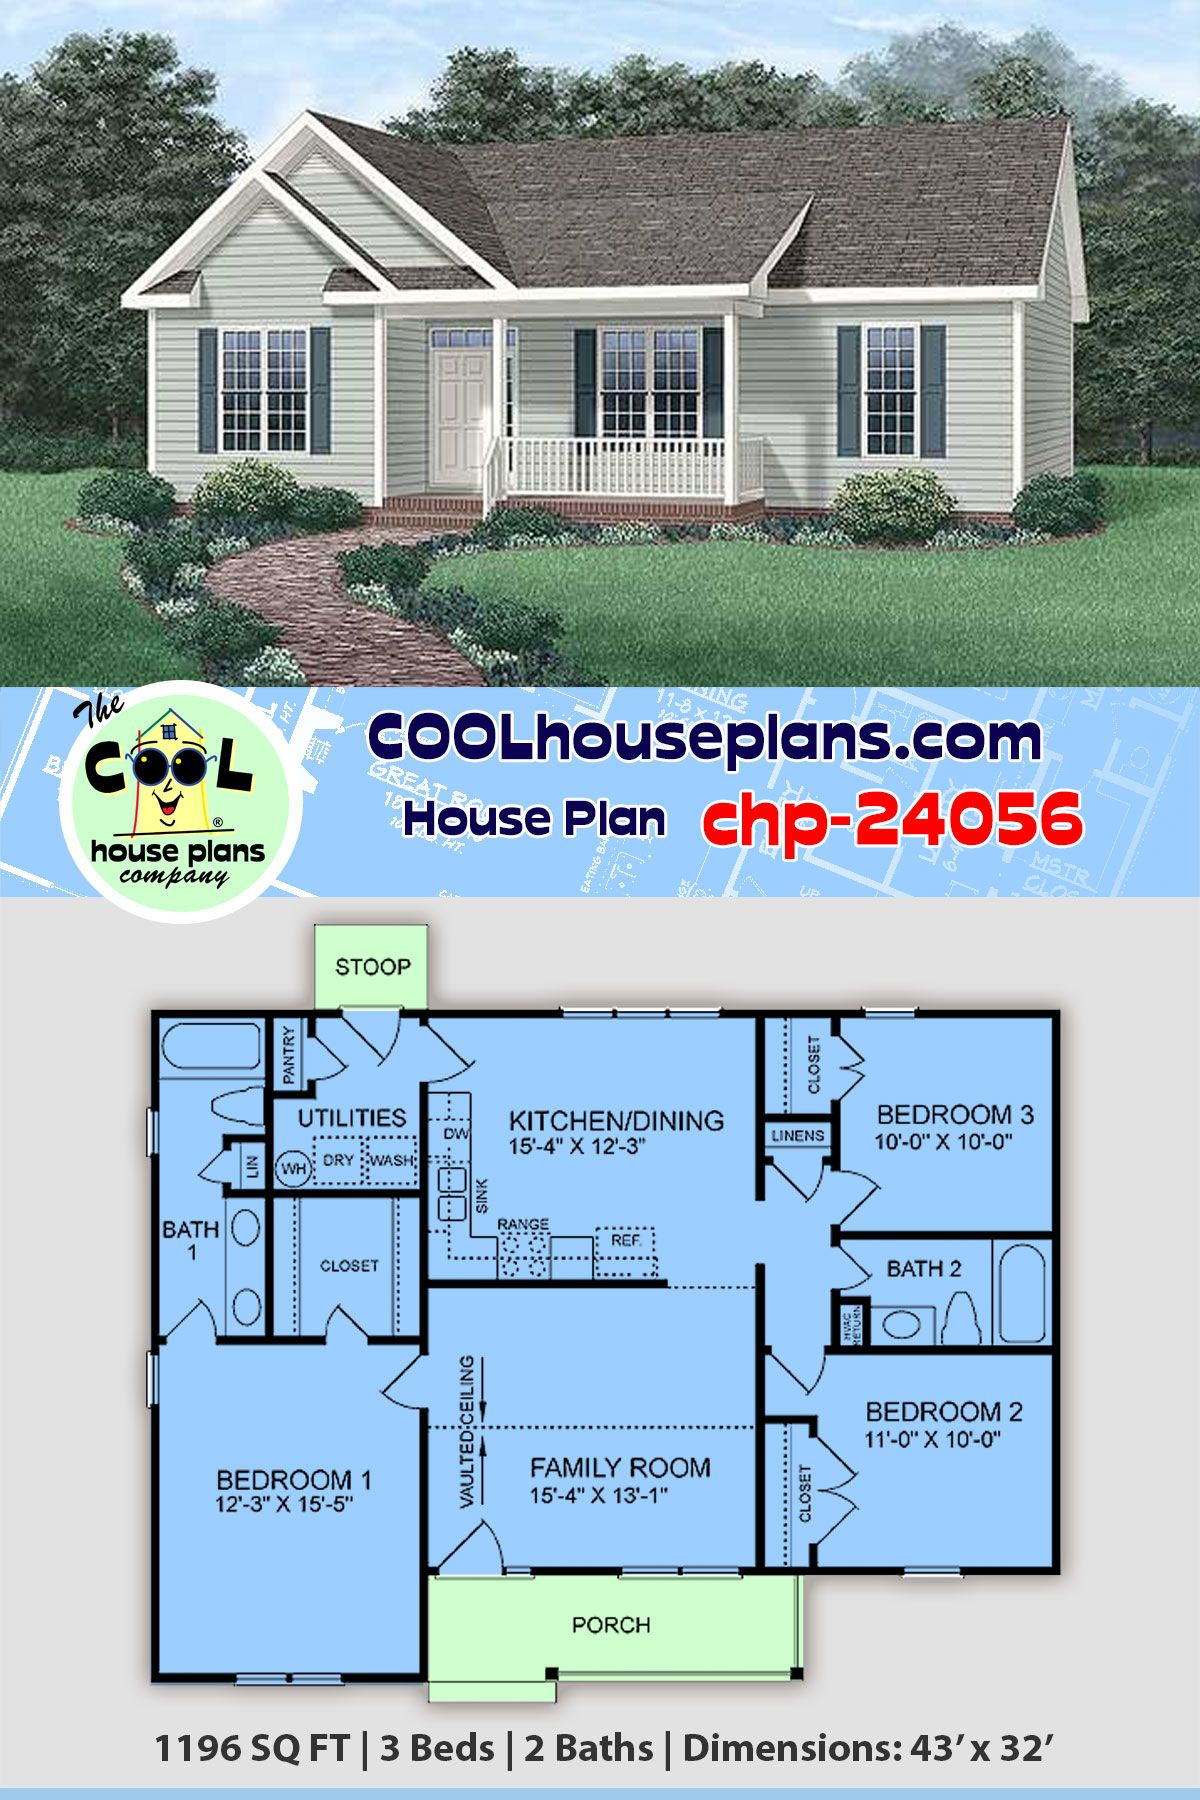 Compact 3 Bedroom Home Plan Chp 24056 At Cool House Plans Affordable Ranch Collection Ranch Style House Plans House Plans Best House Plans